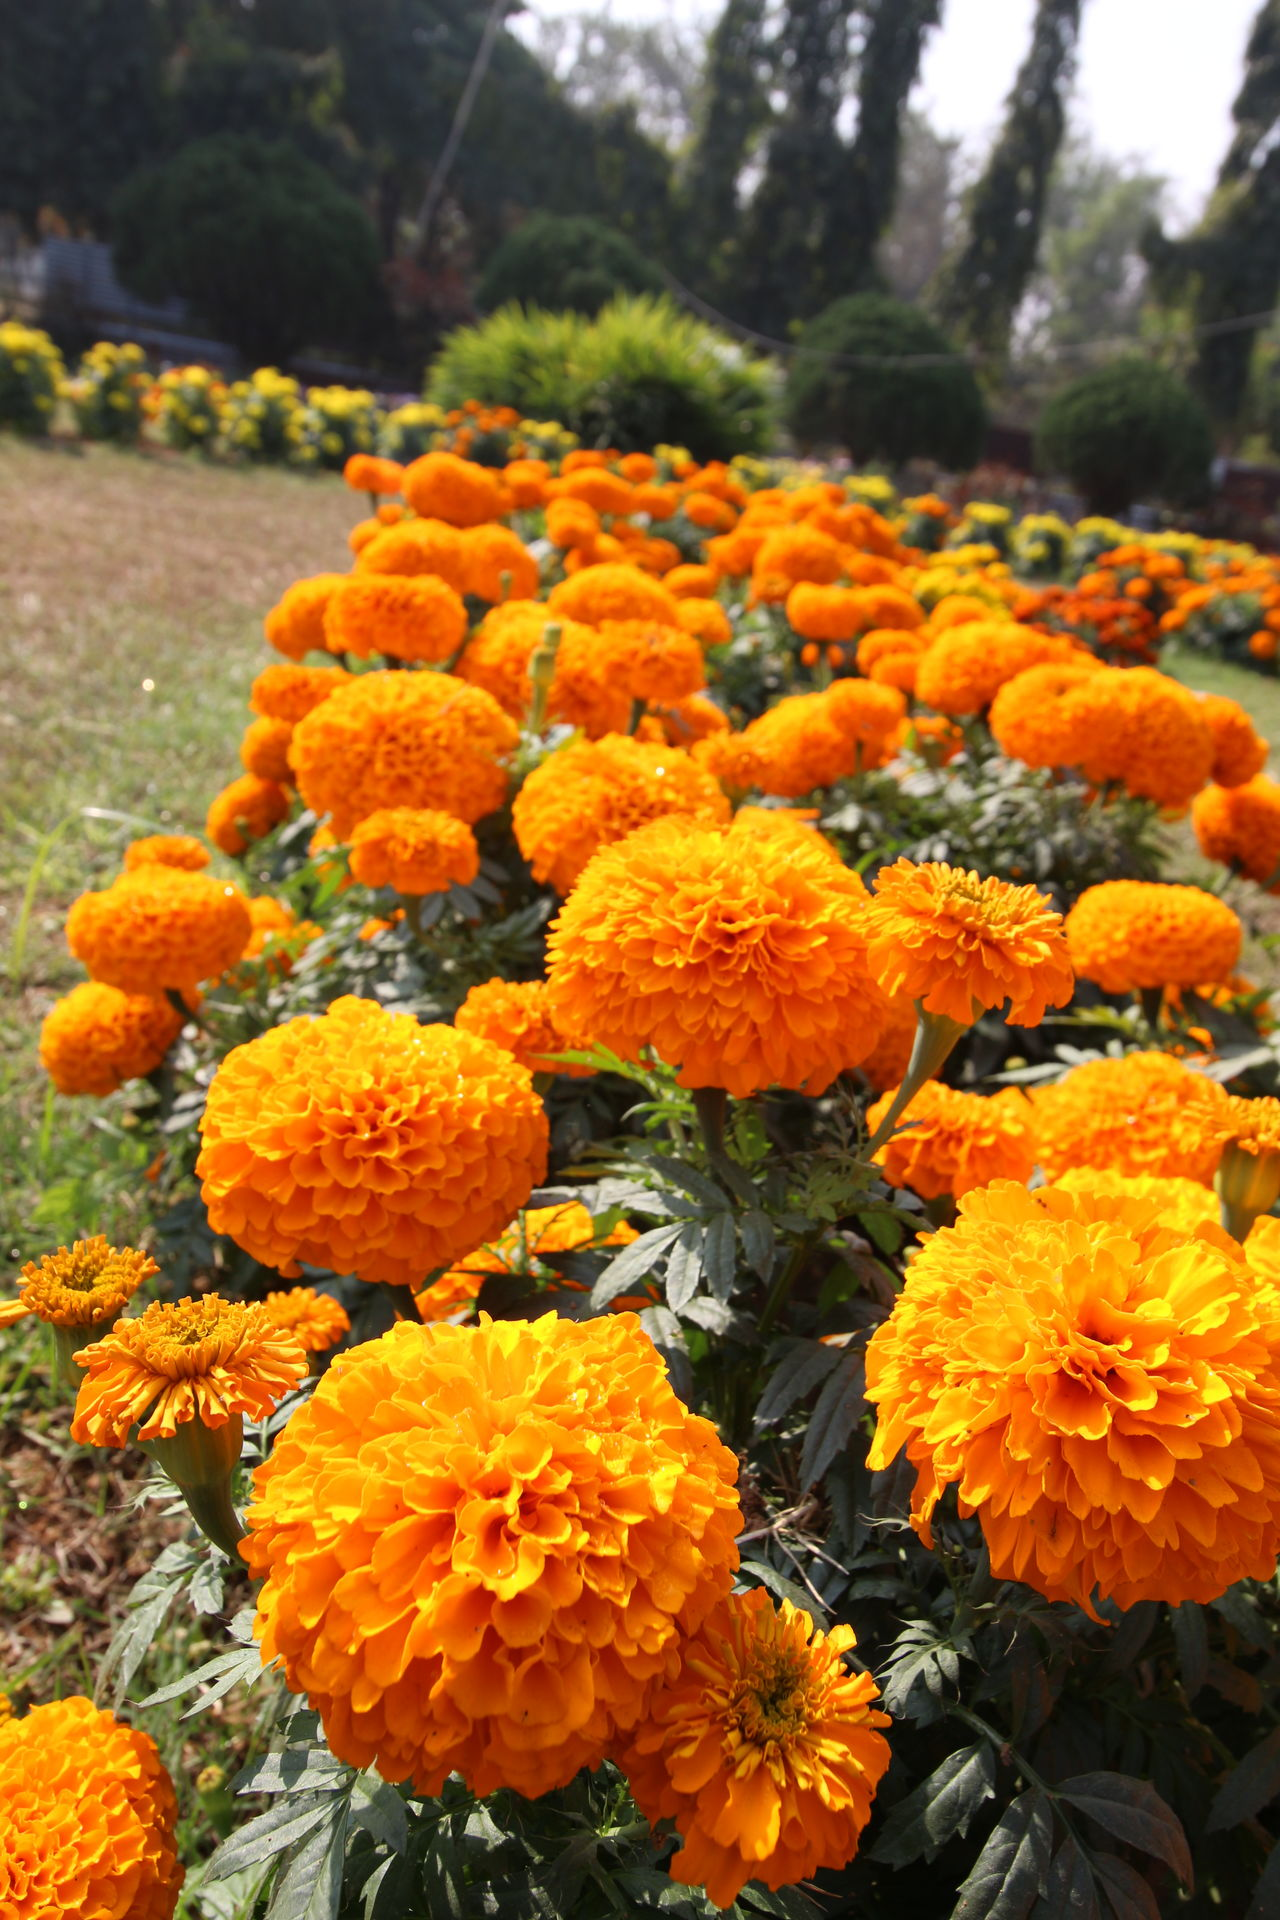 Beauty In Nature Bedofflowers Close-up Collection Collections Flower Head Flowers Freshness Growth India Marigold Nature Outdoors Picoftheday Winter Yellow